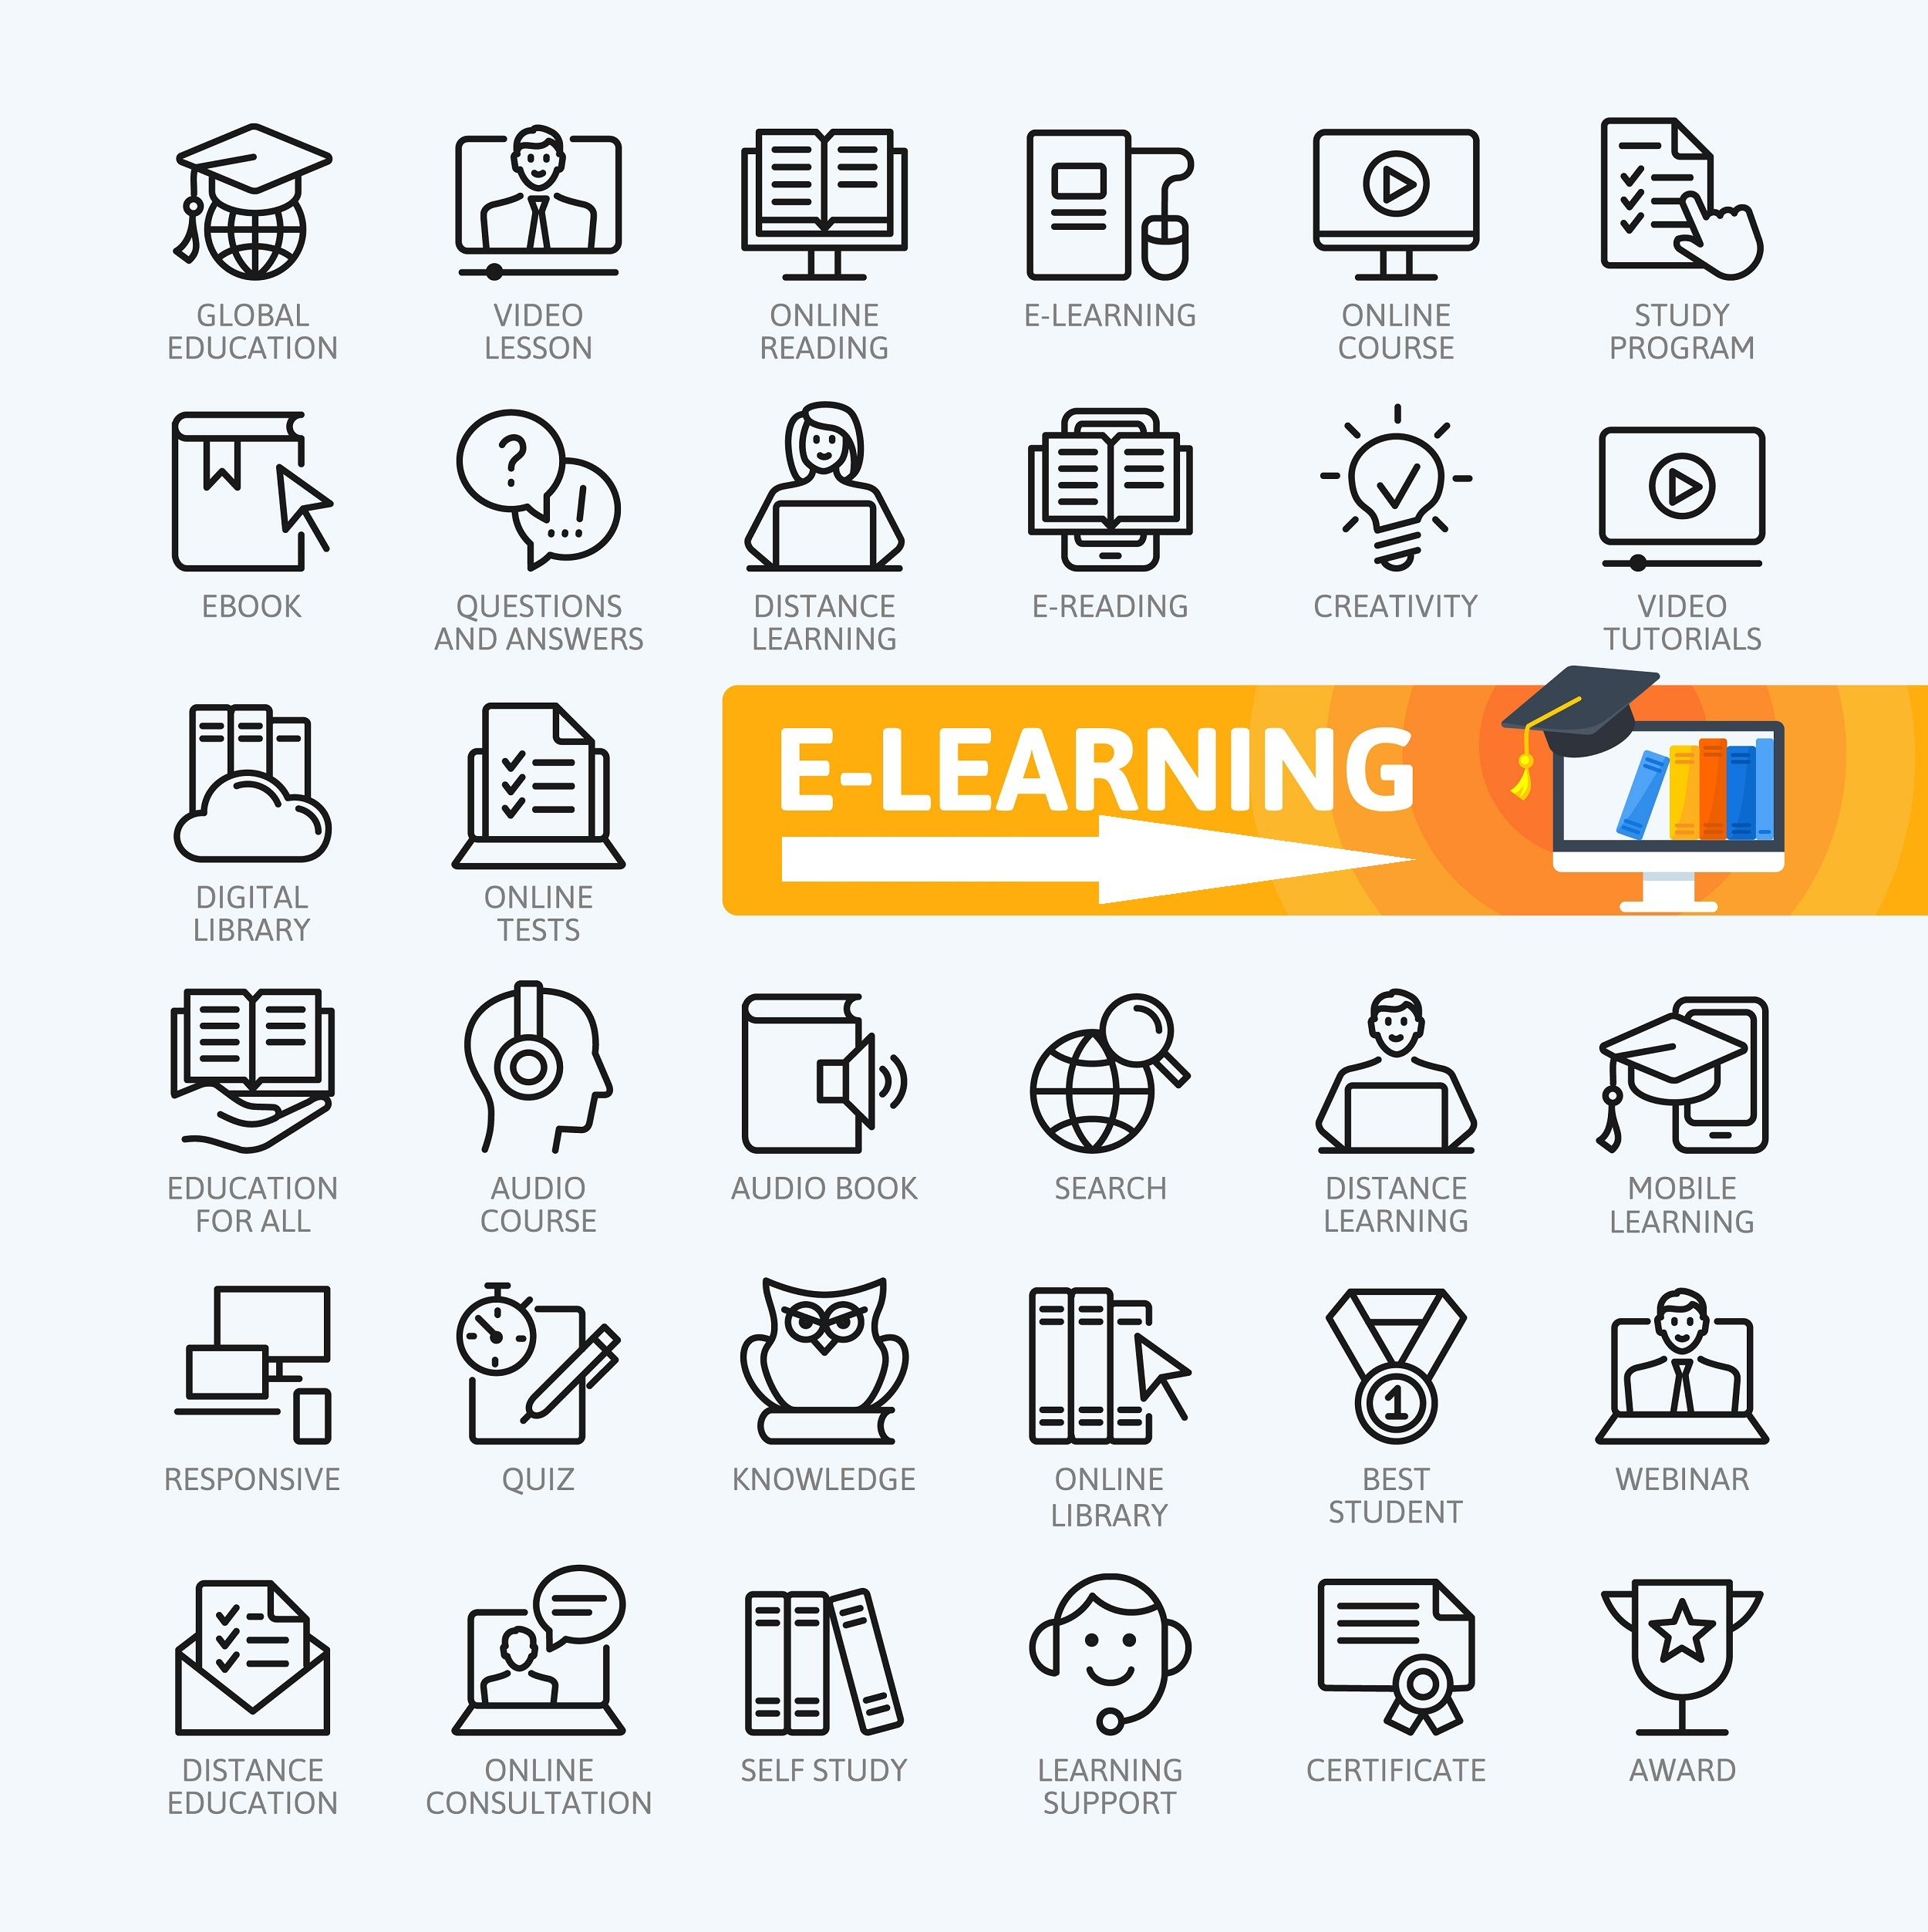 Why blend e-learning and classroom learning tools together on one platform?